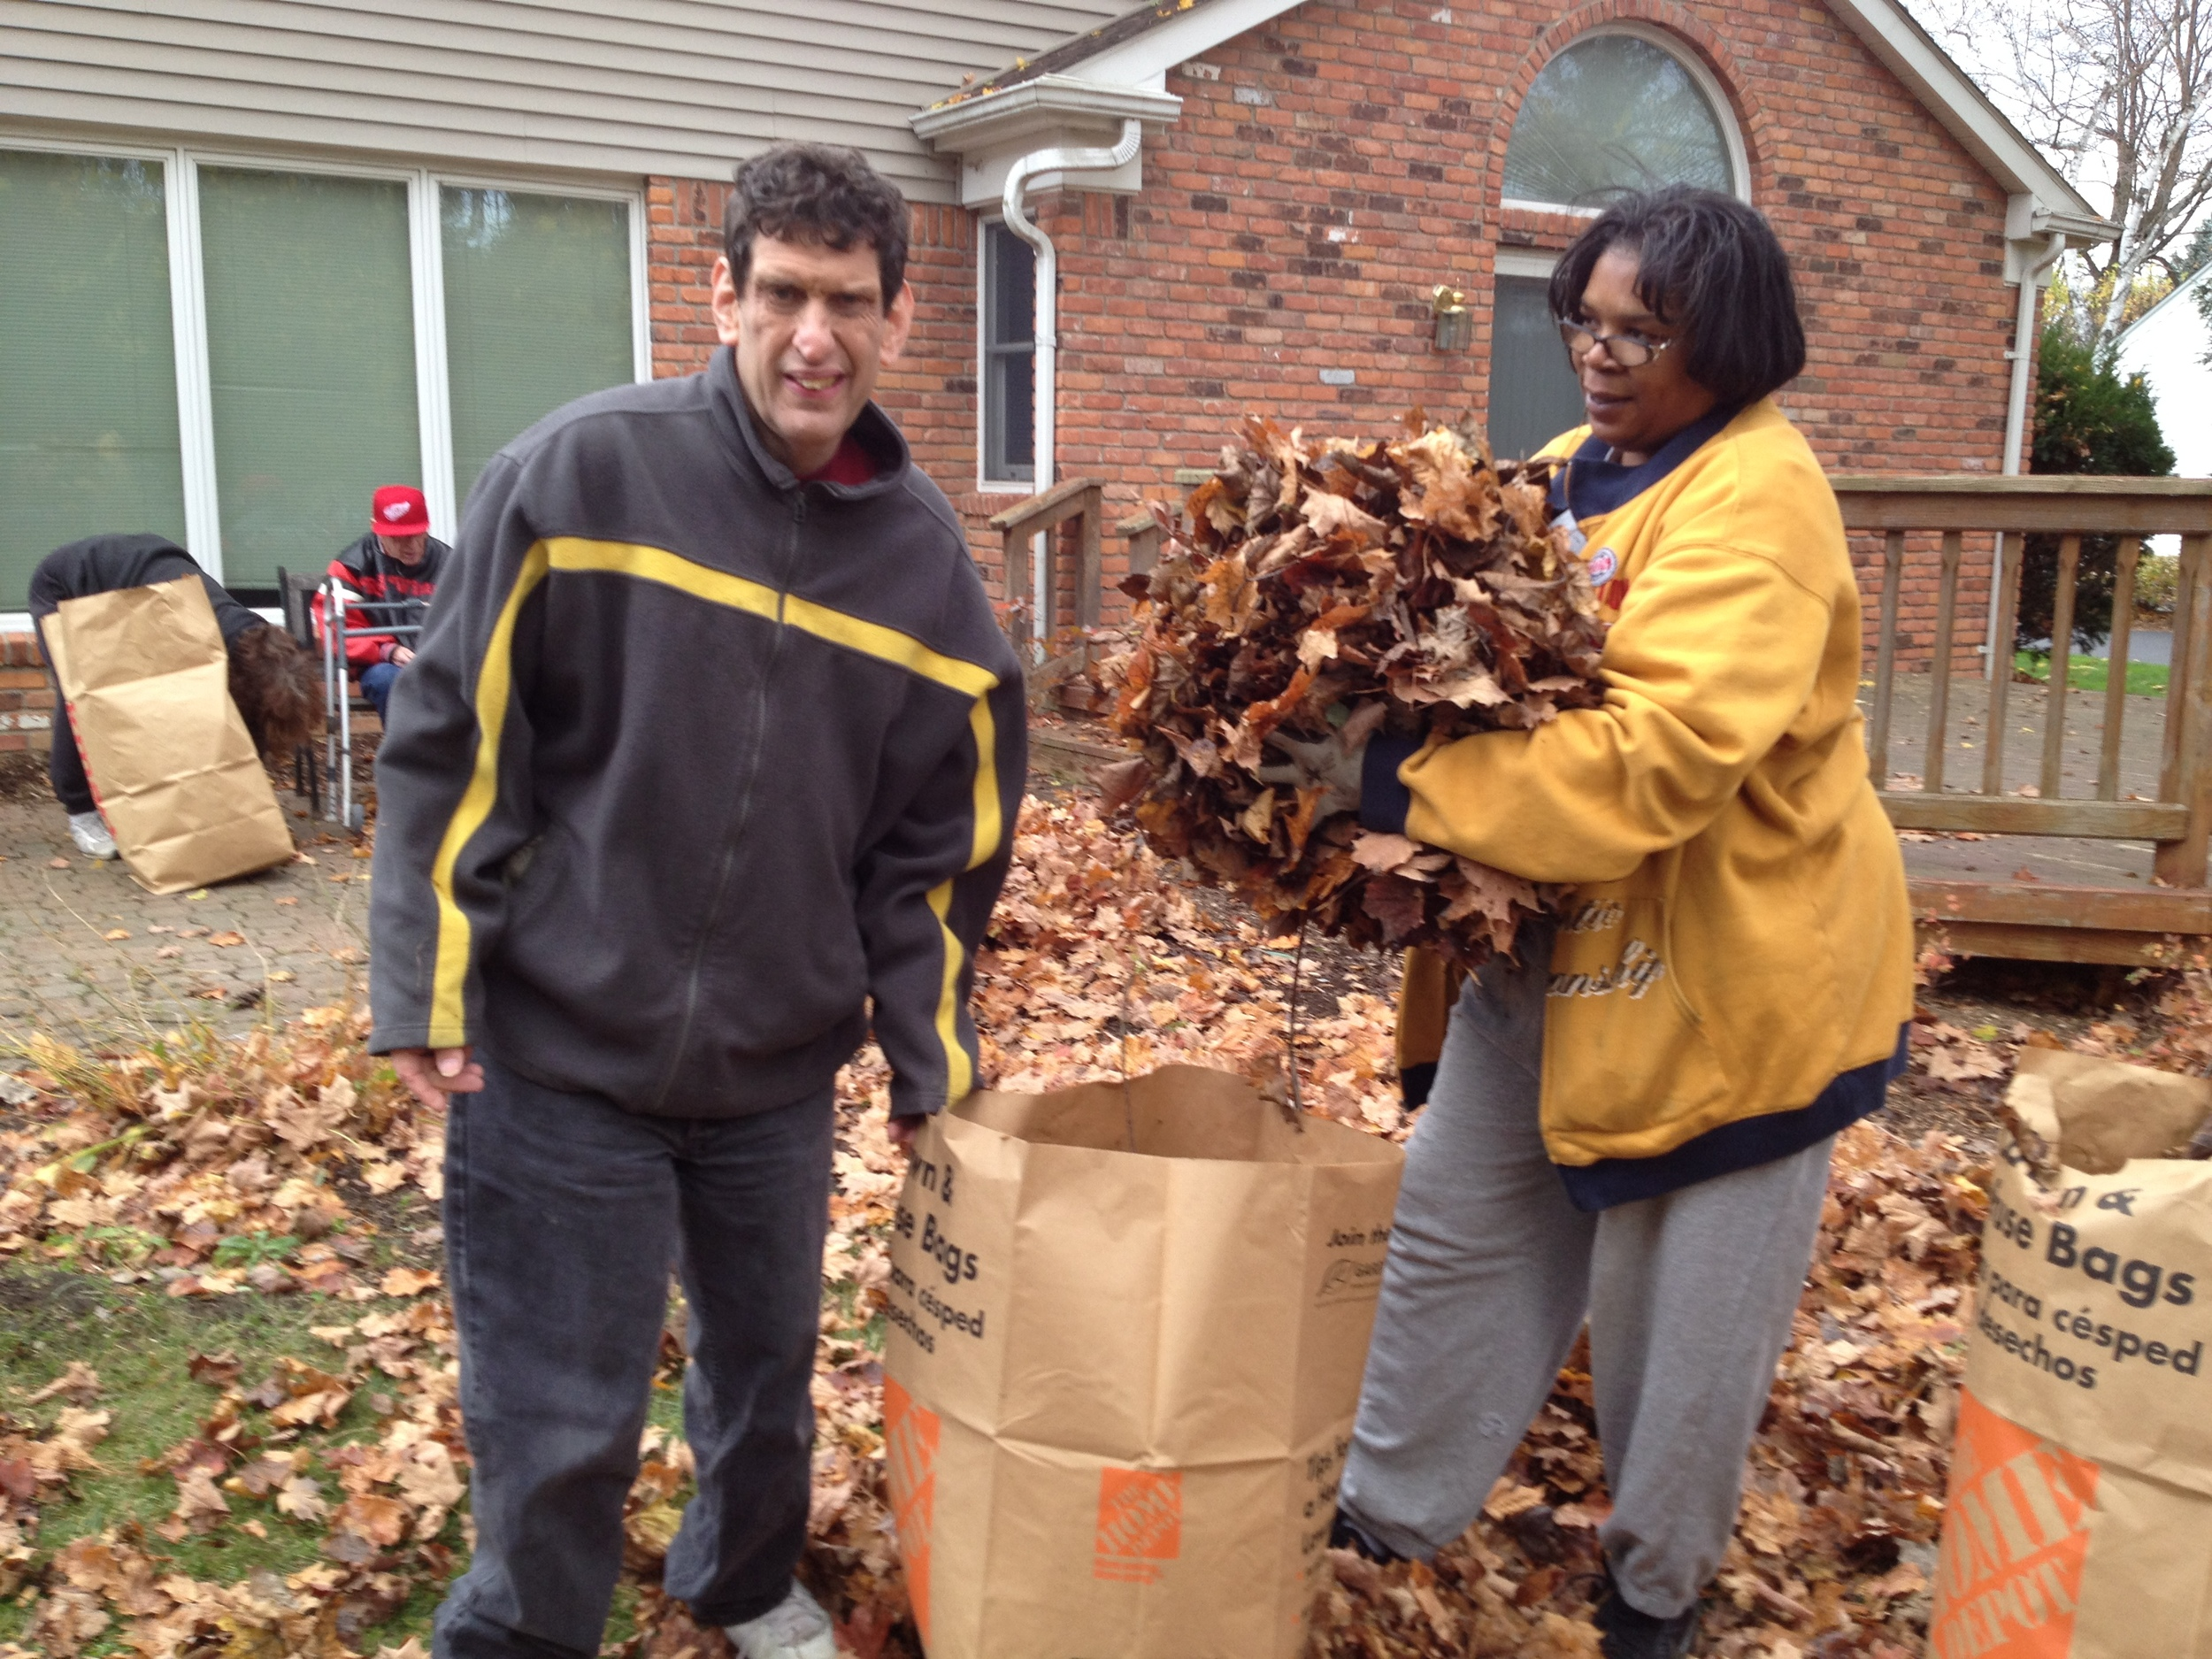 Ross helping with some fall clean up at his home in Farmington Hills